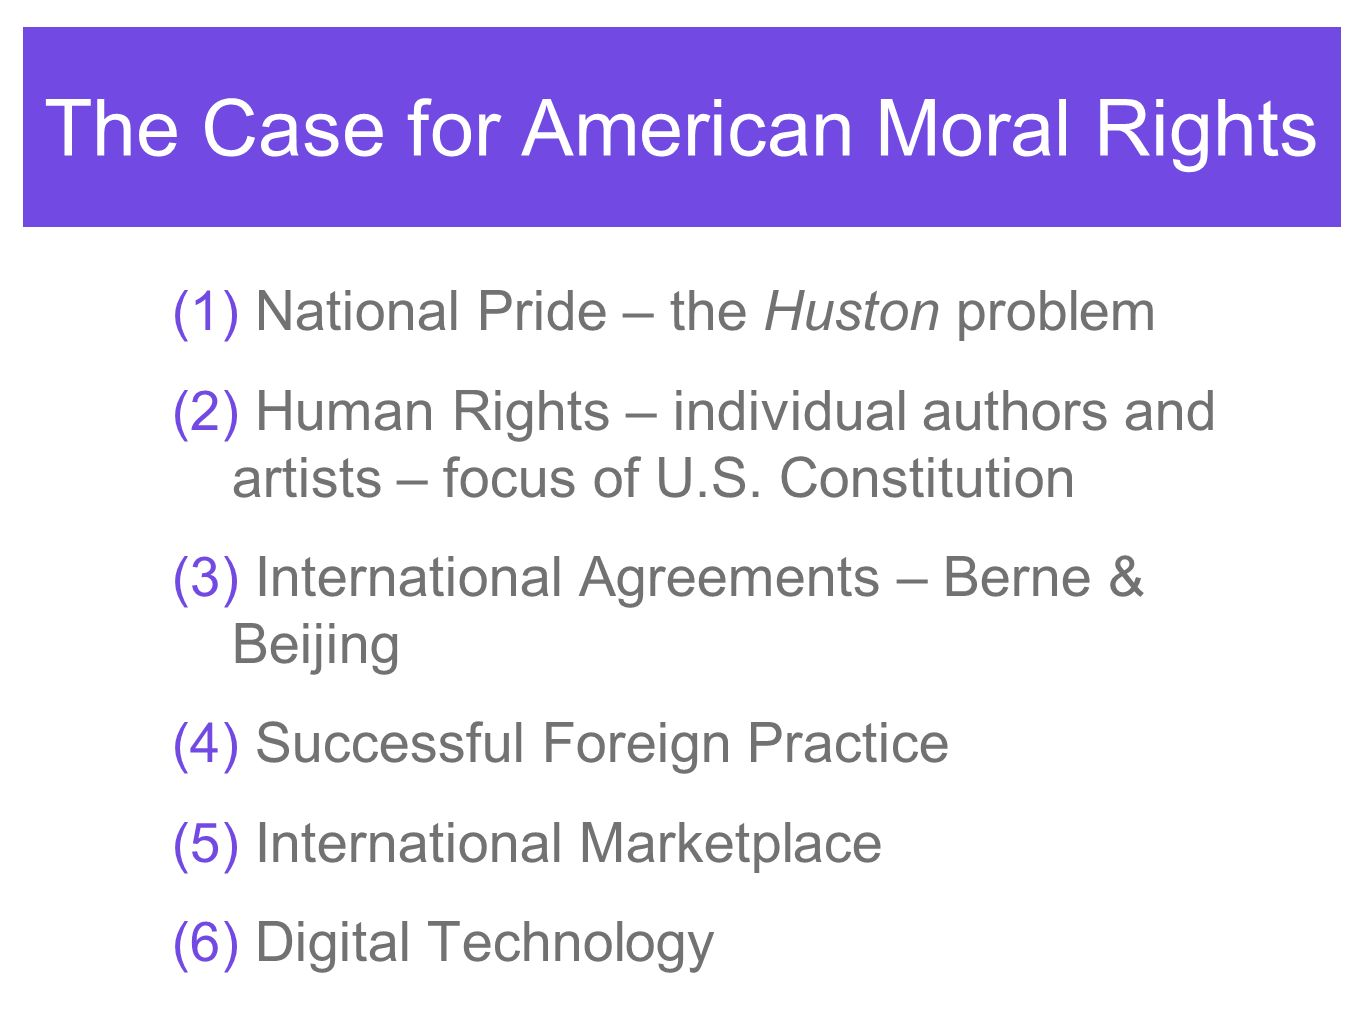 The Case for American Moral Rights (1) National Pride – the Huston problem (2) Human Rights – individual authors and artists – focus of U.S. Constitut